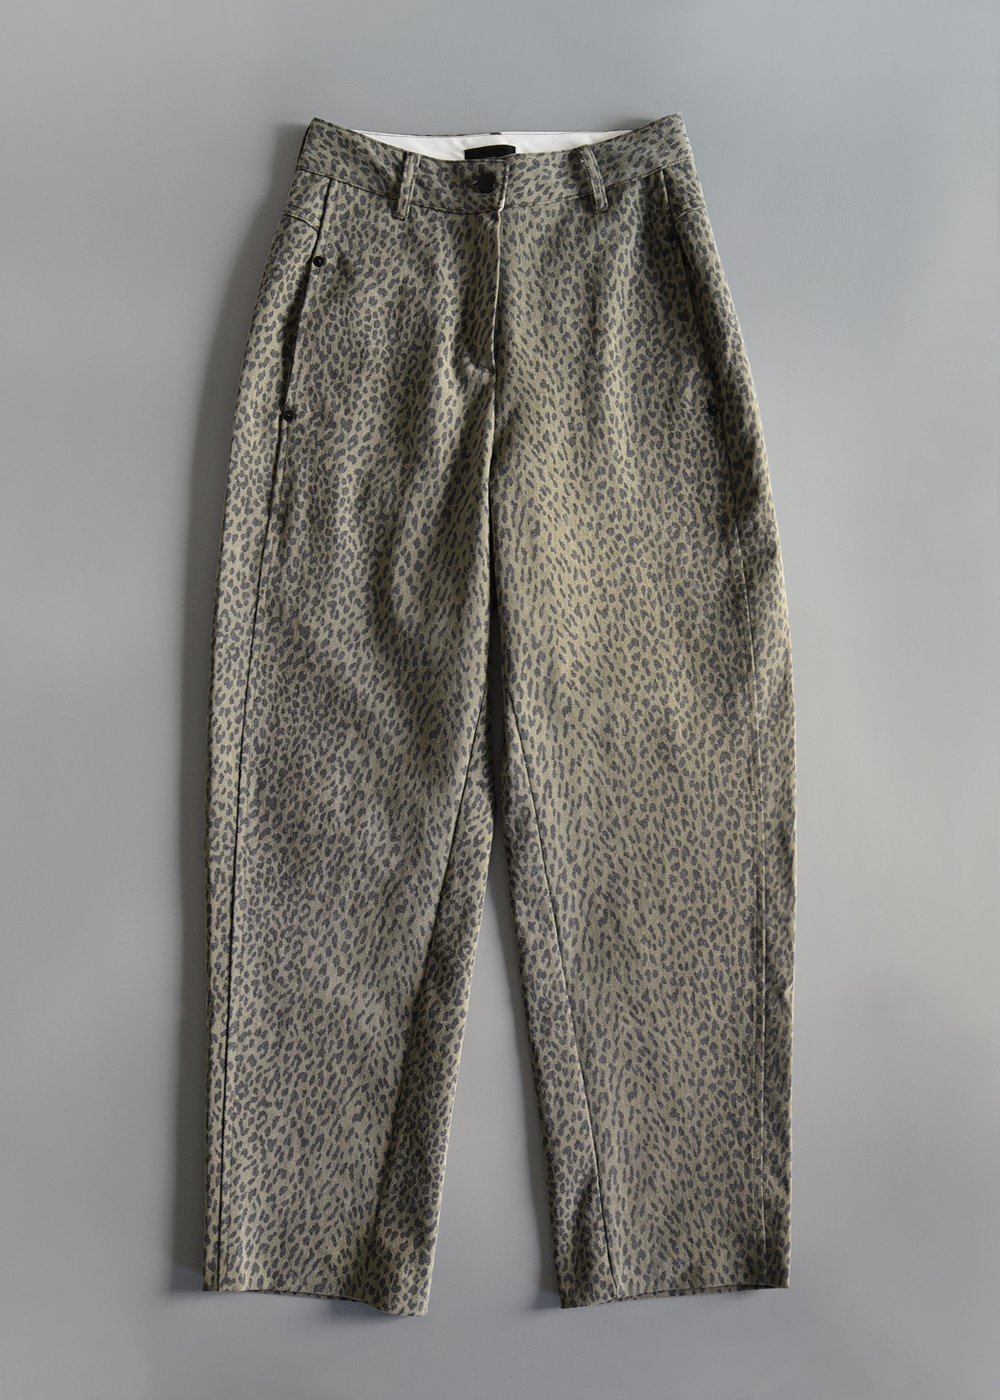 Structural Leopard Pants